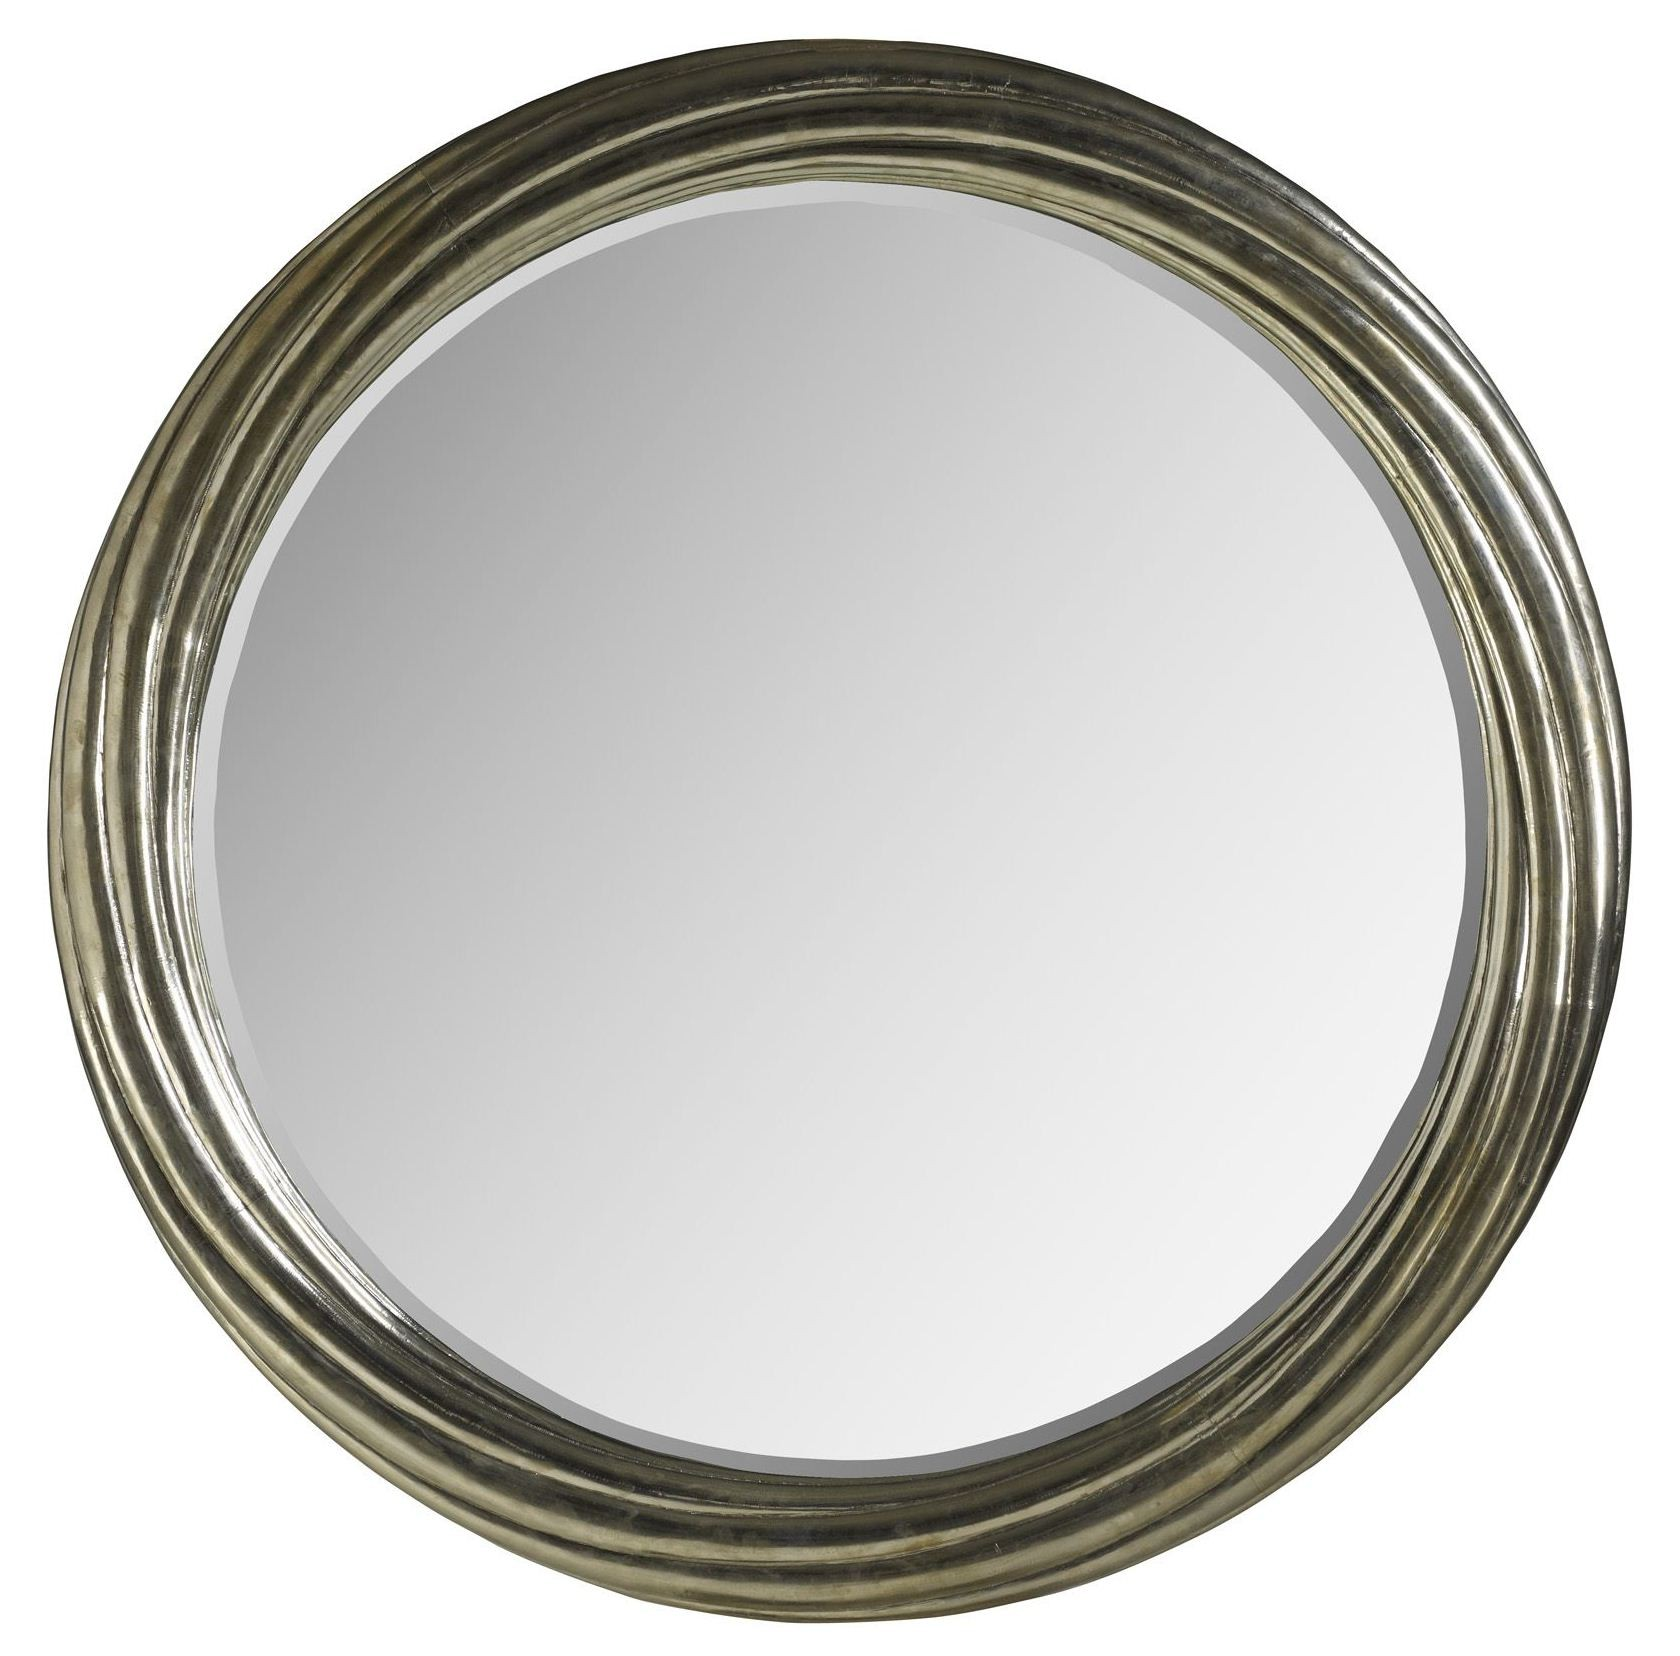 Treviso large round mirror from brownstone tr019 for Big circle mirror